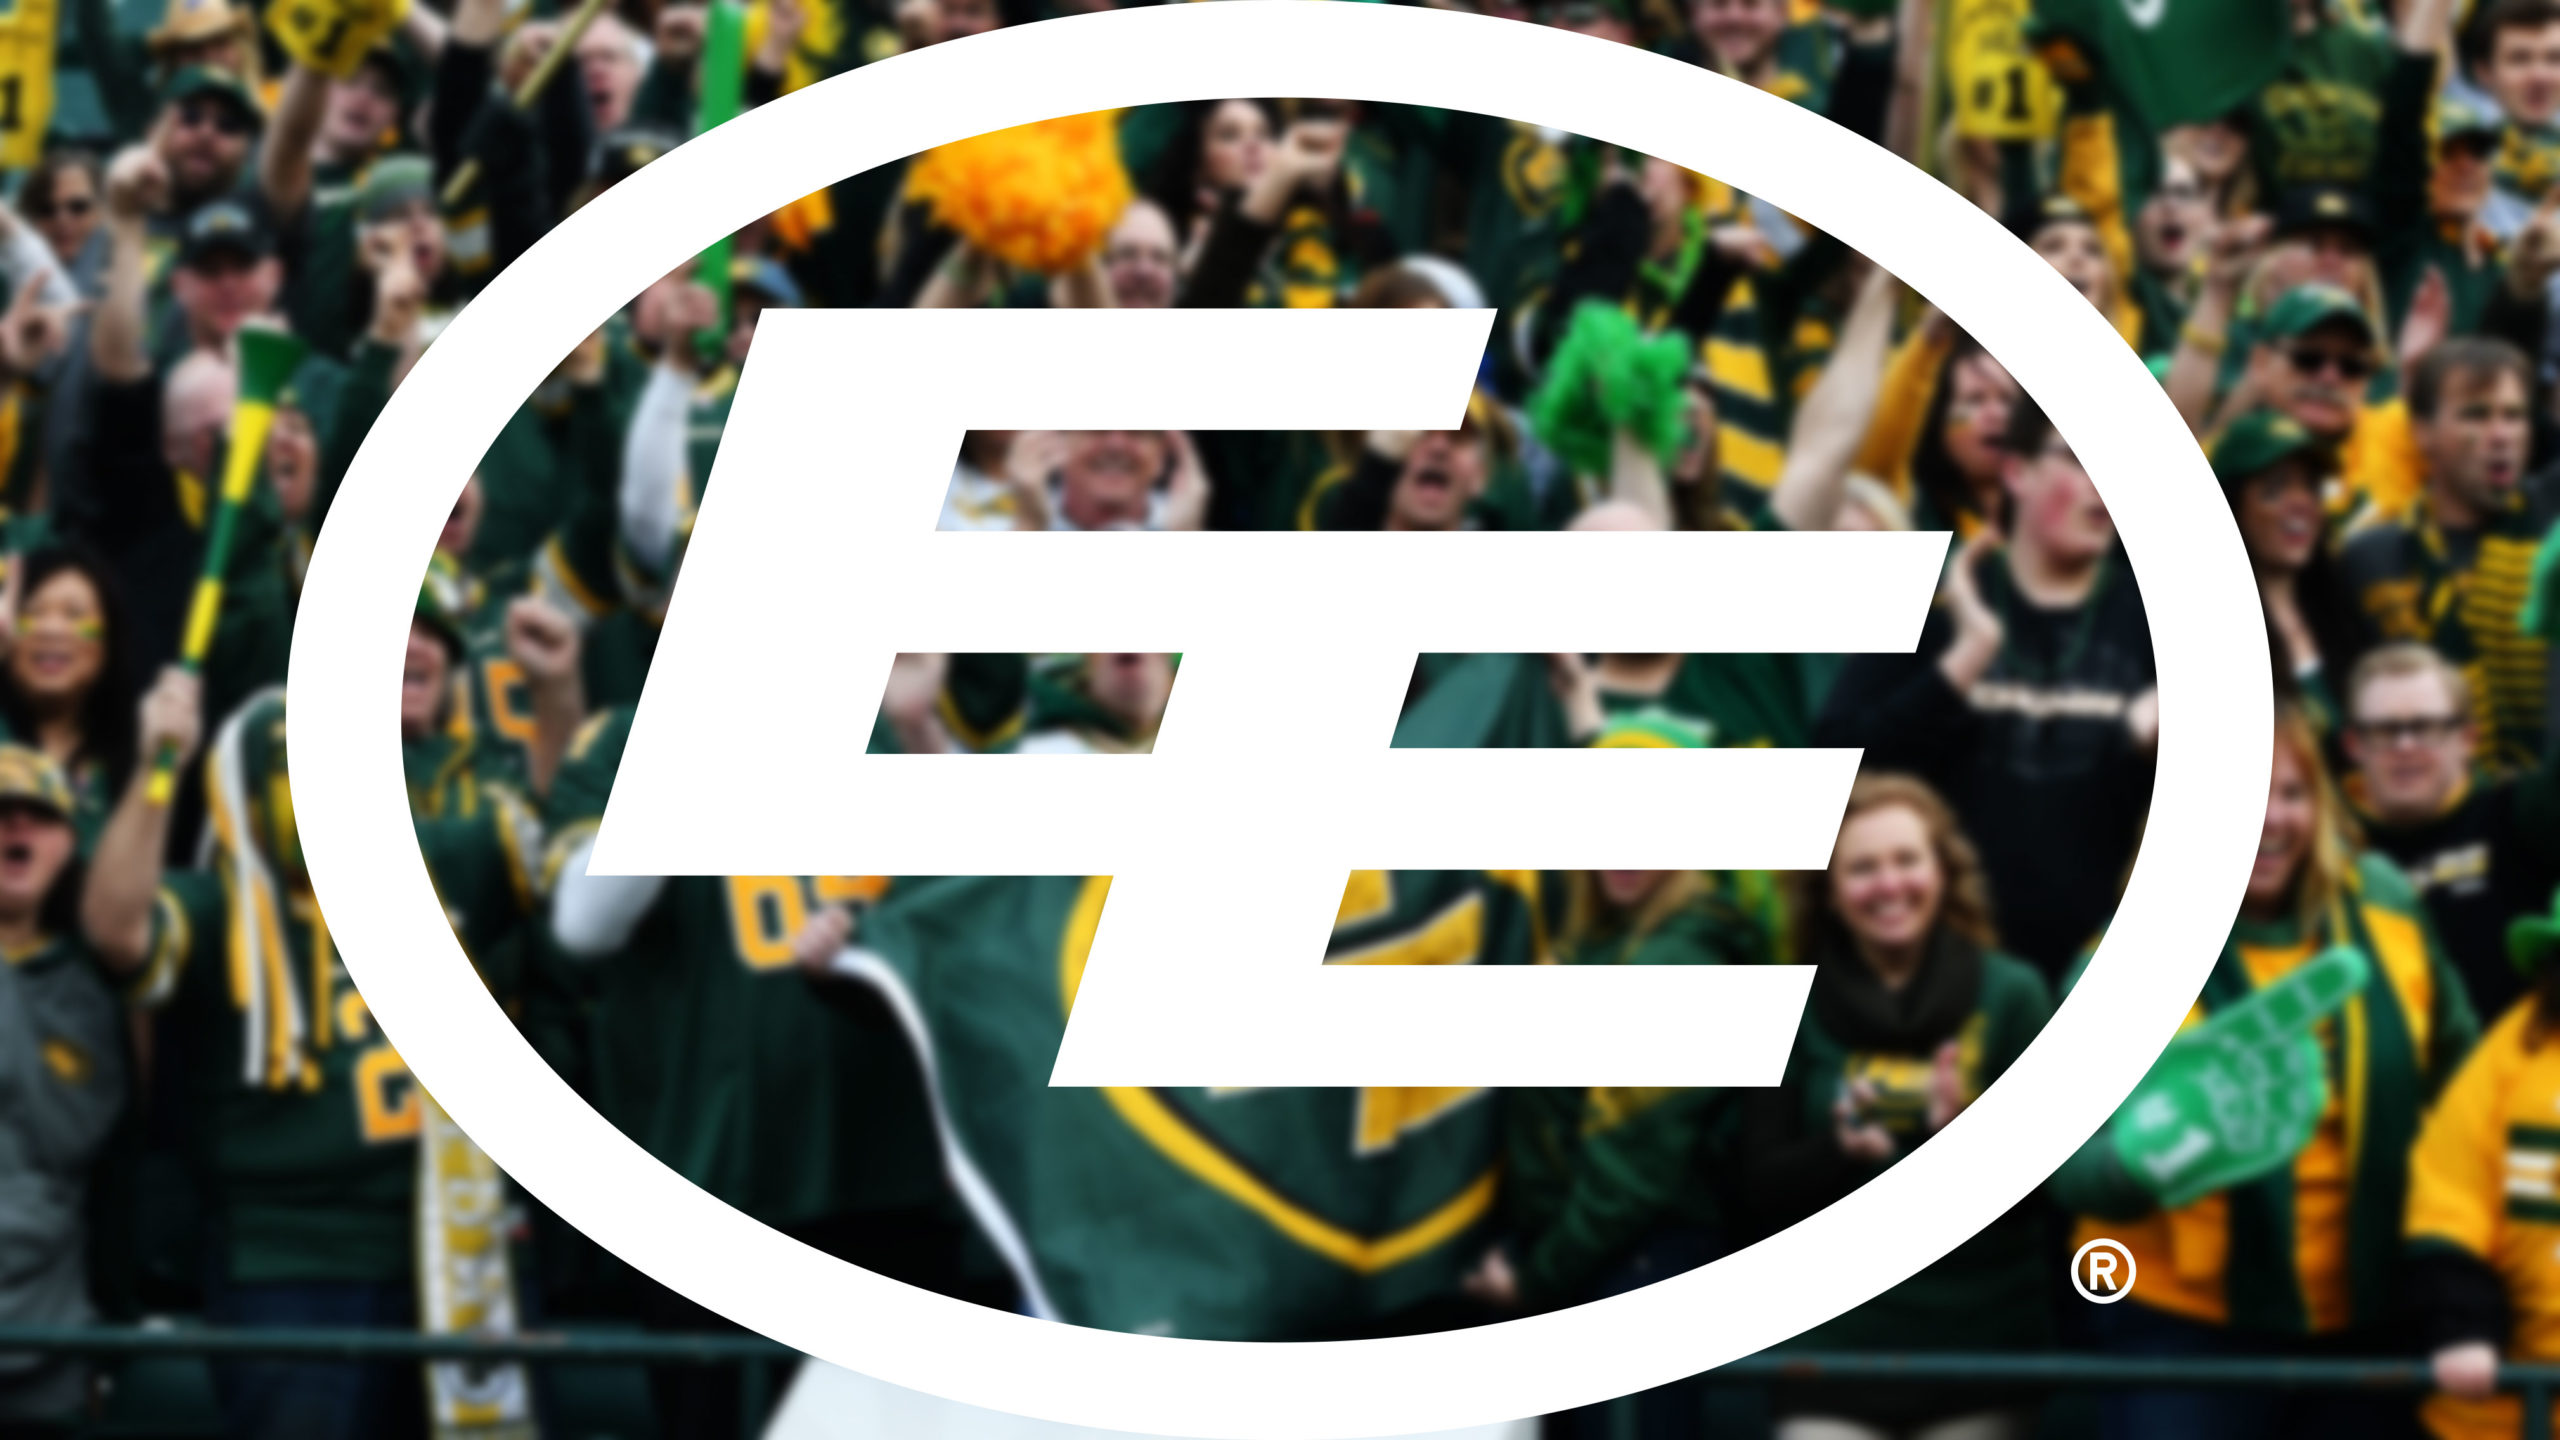 Edmonton move on from the 'Eskimos' name – what will they replace it with?